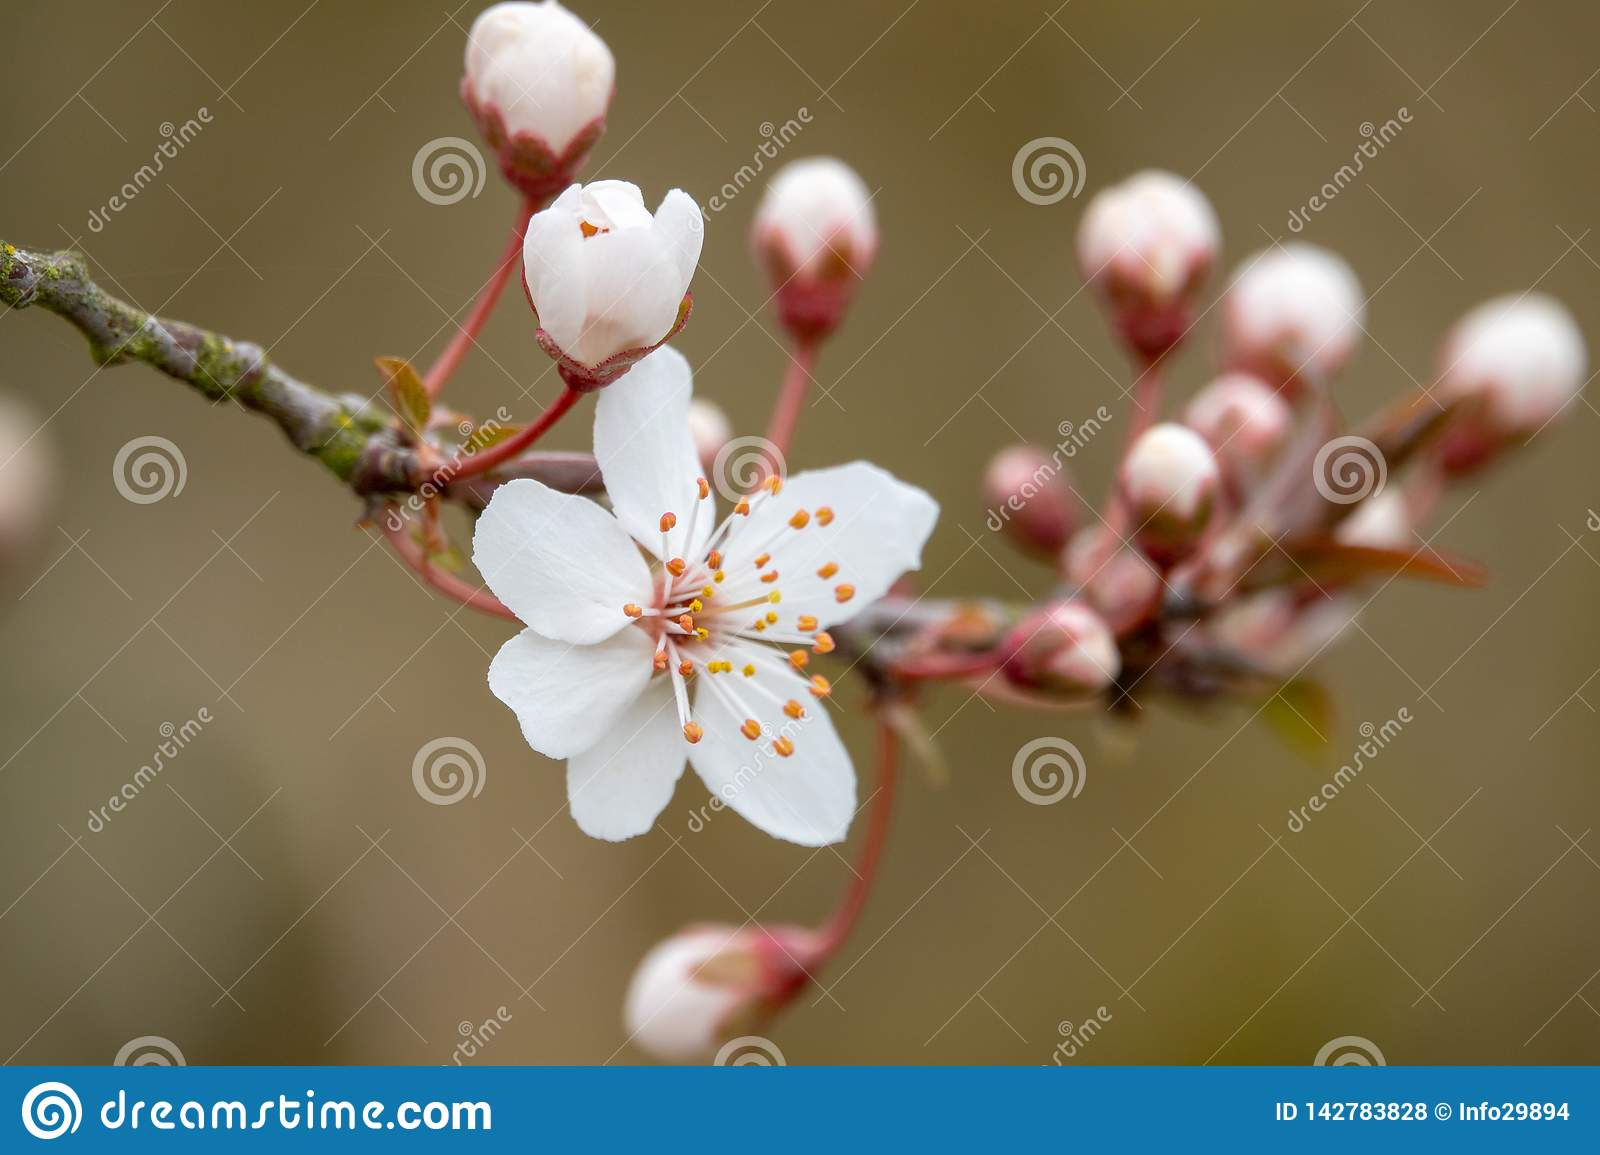 A white blossom in spring